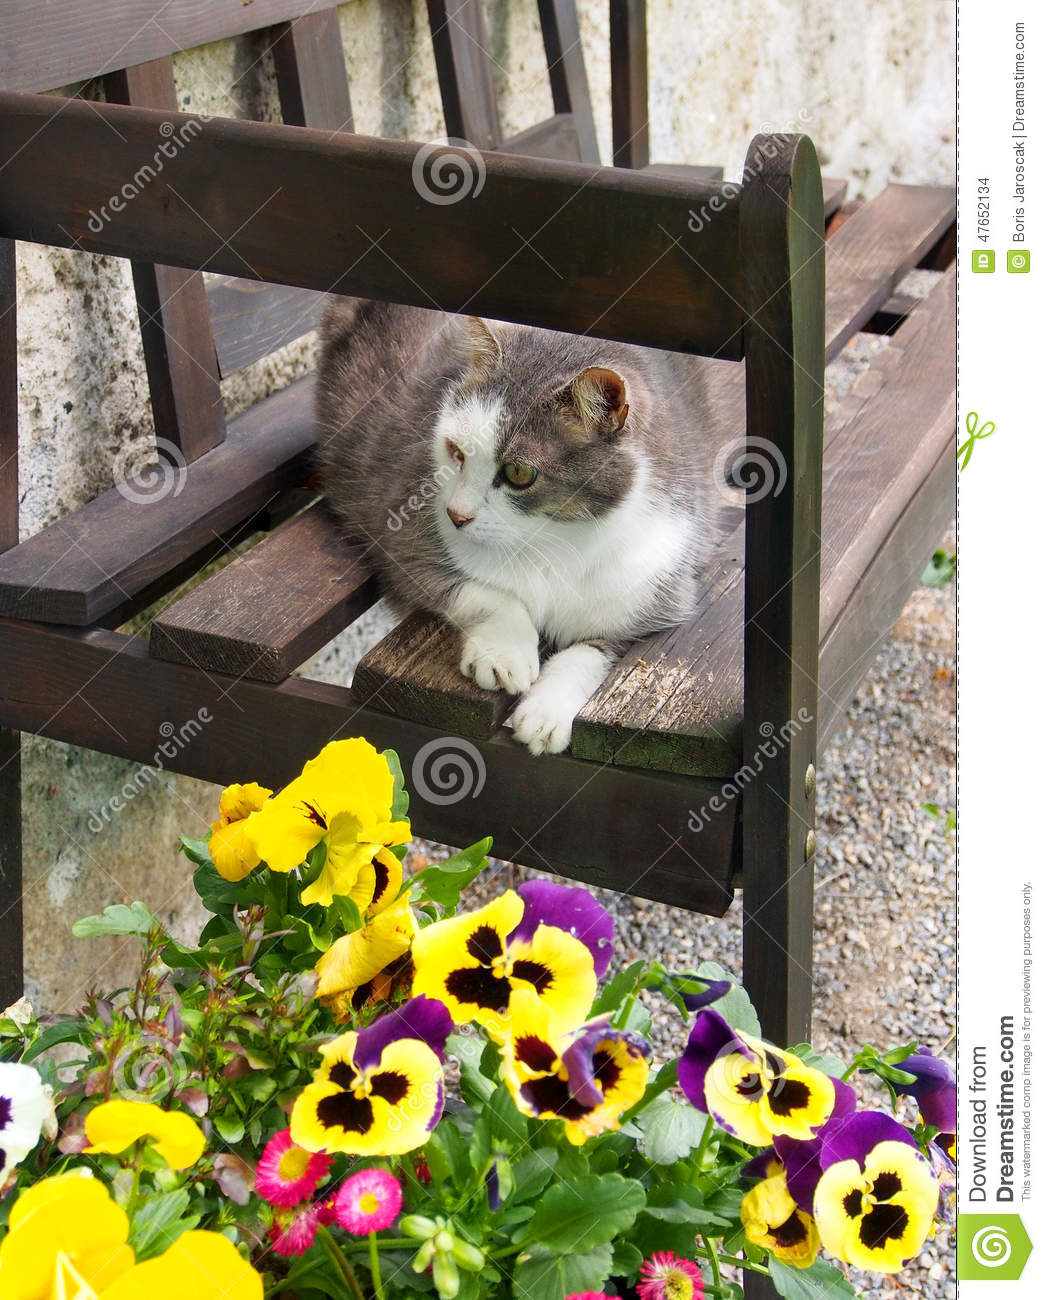 Cat resting on wooden bench